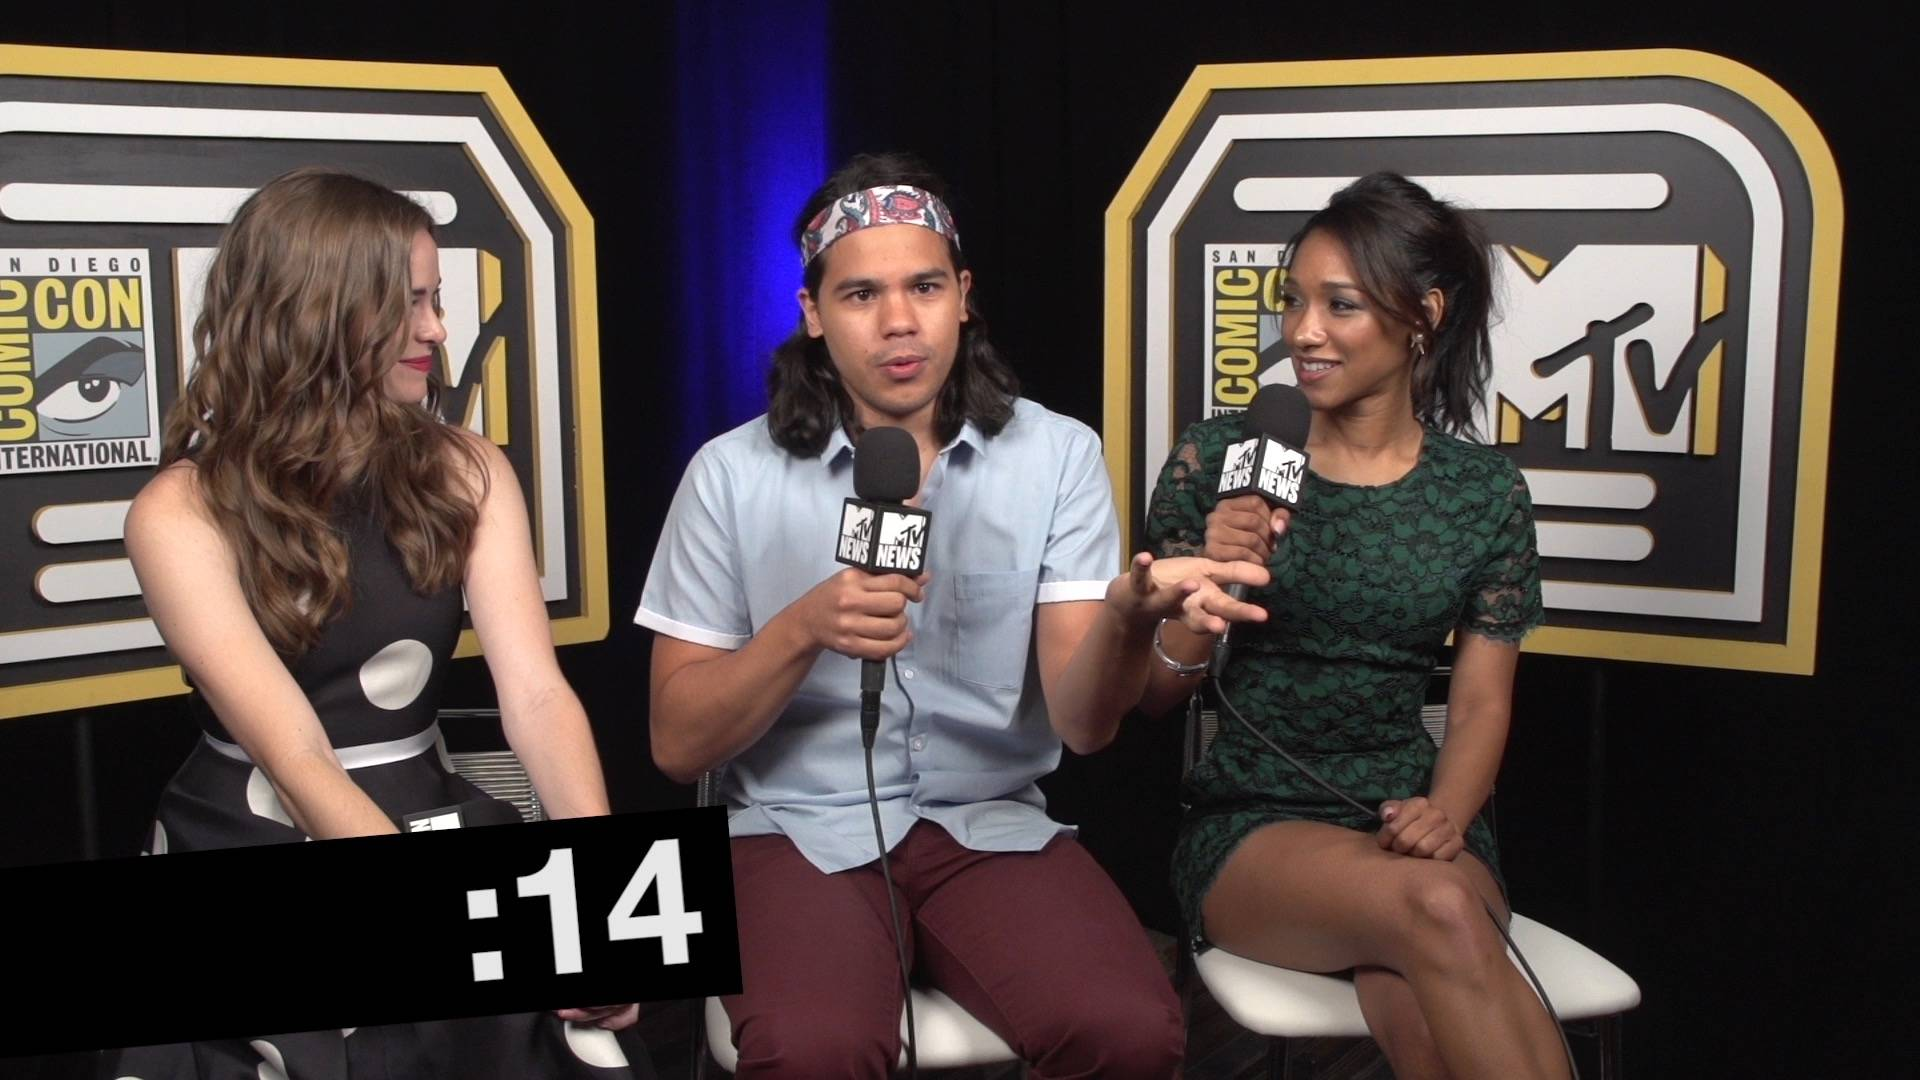 711ec7a929e5 'The Flash' Cast Gets You Caught Up in 30 Seconds - MTV News (Video Clip) |  VMA